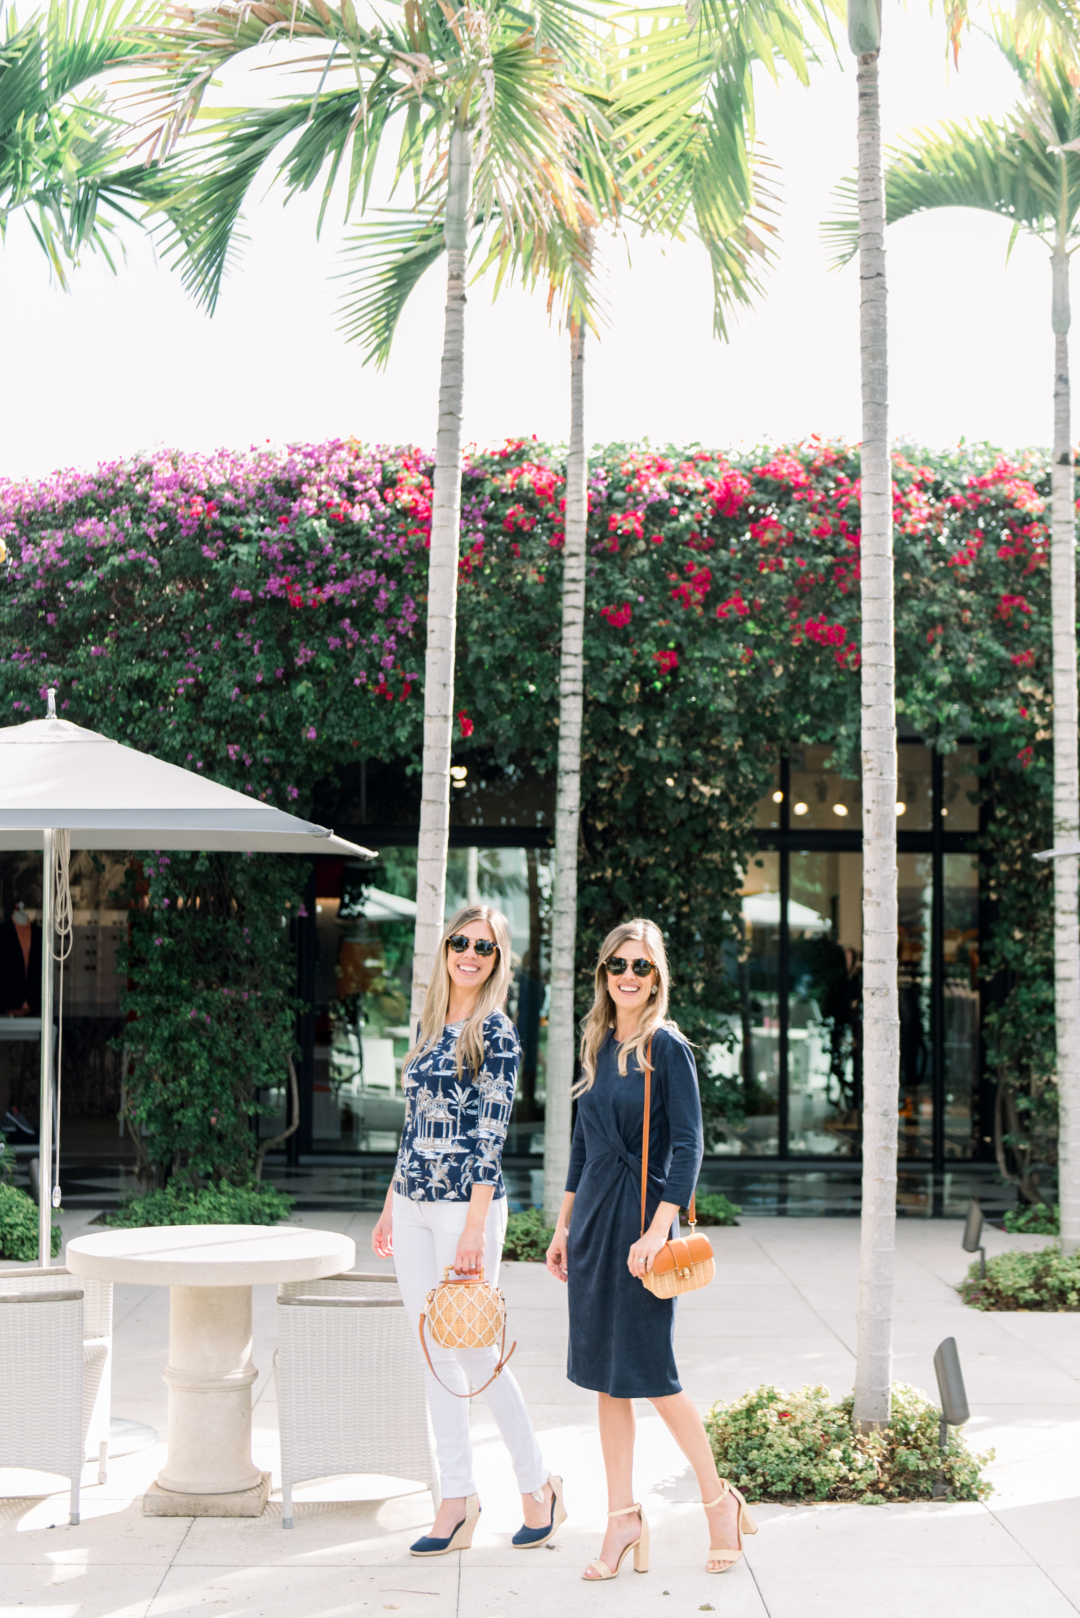 Fashion: J.McLaughlin with Palm Beach Lately